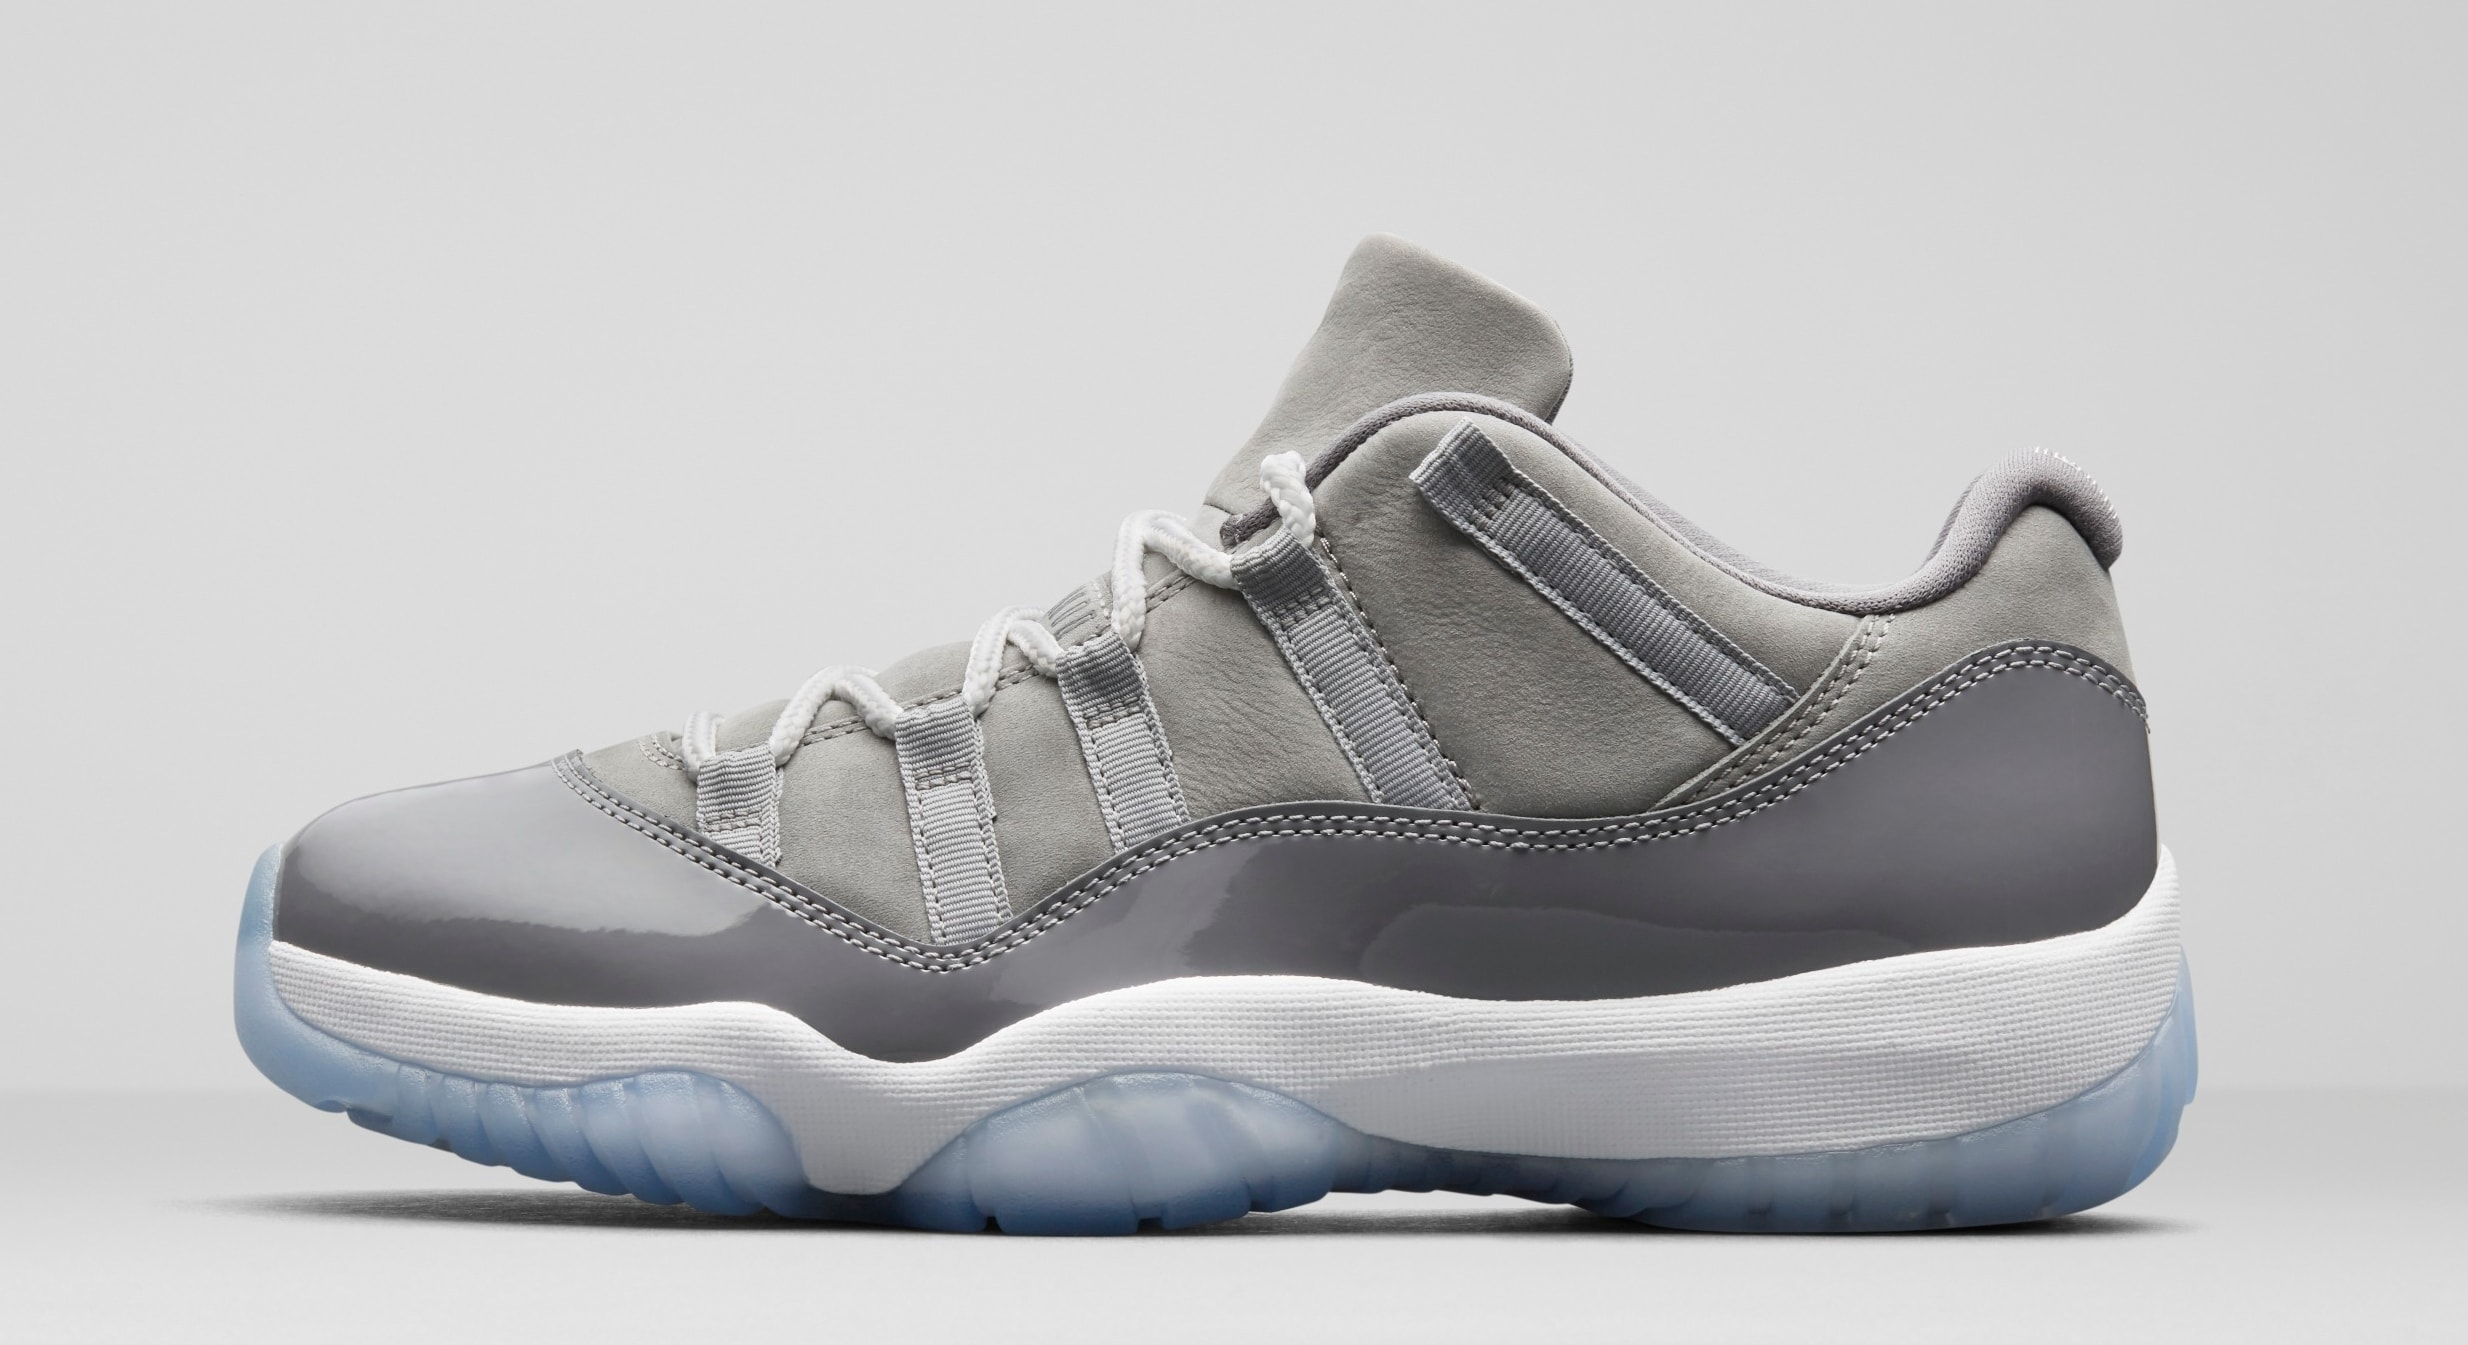 Womens Air Jordan 11 Cool Grey-White-Medium GreyShoes_a3067